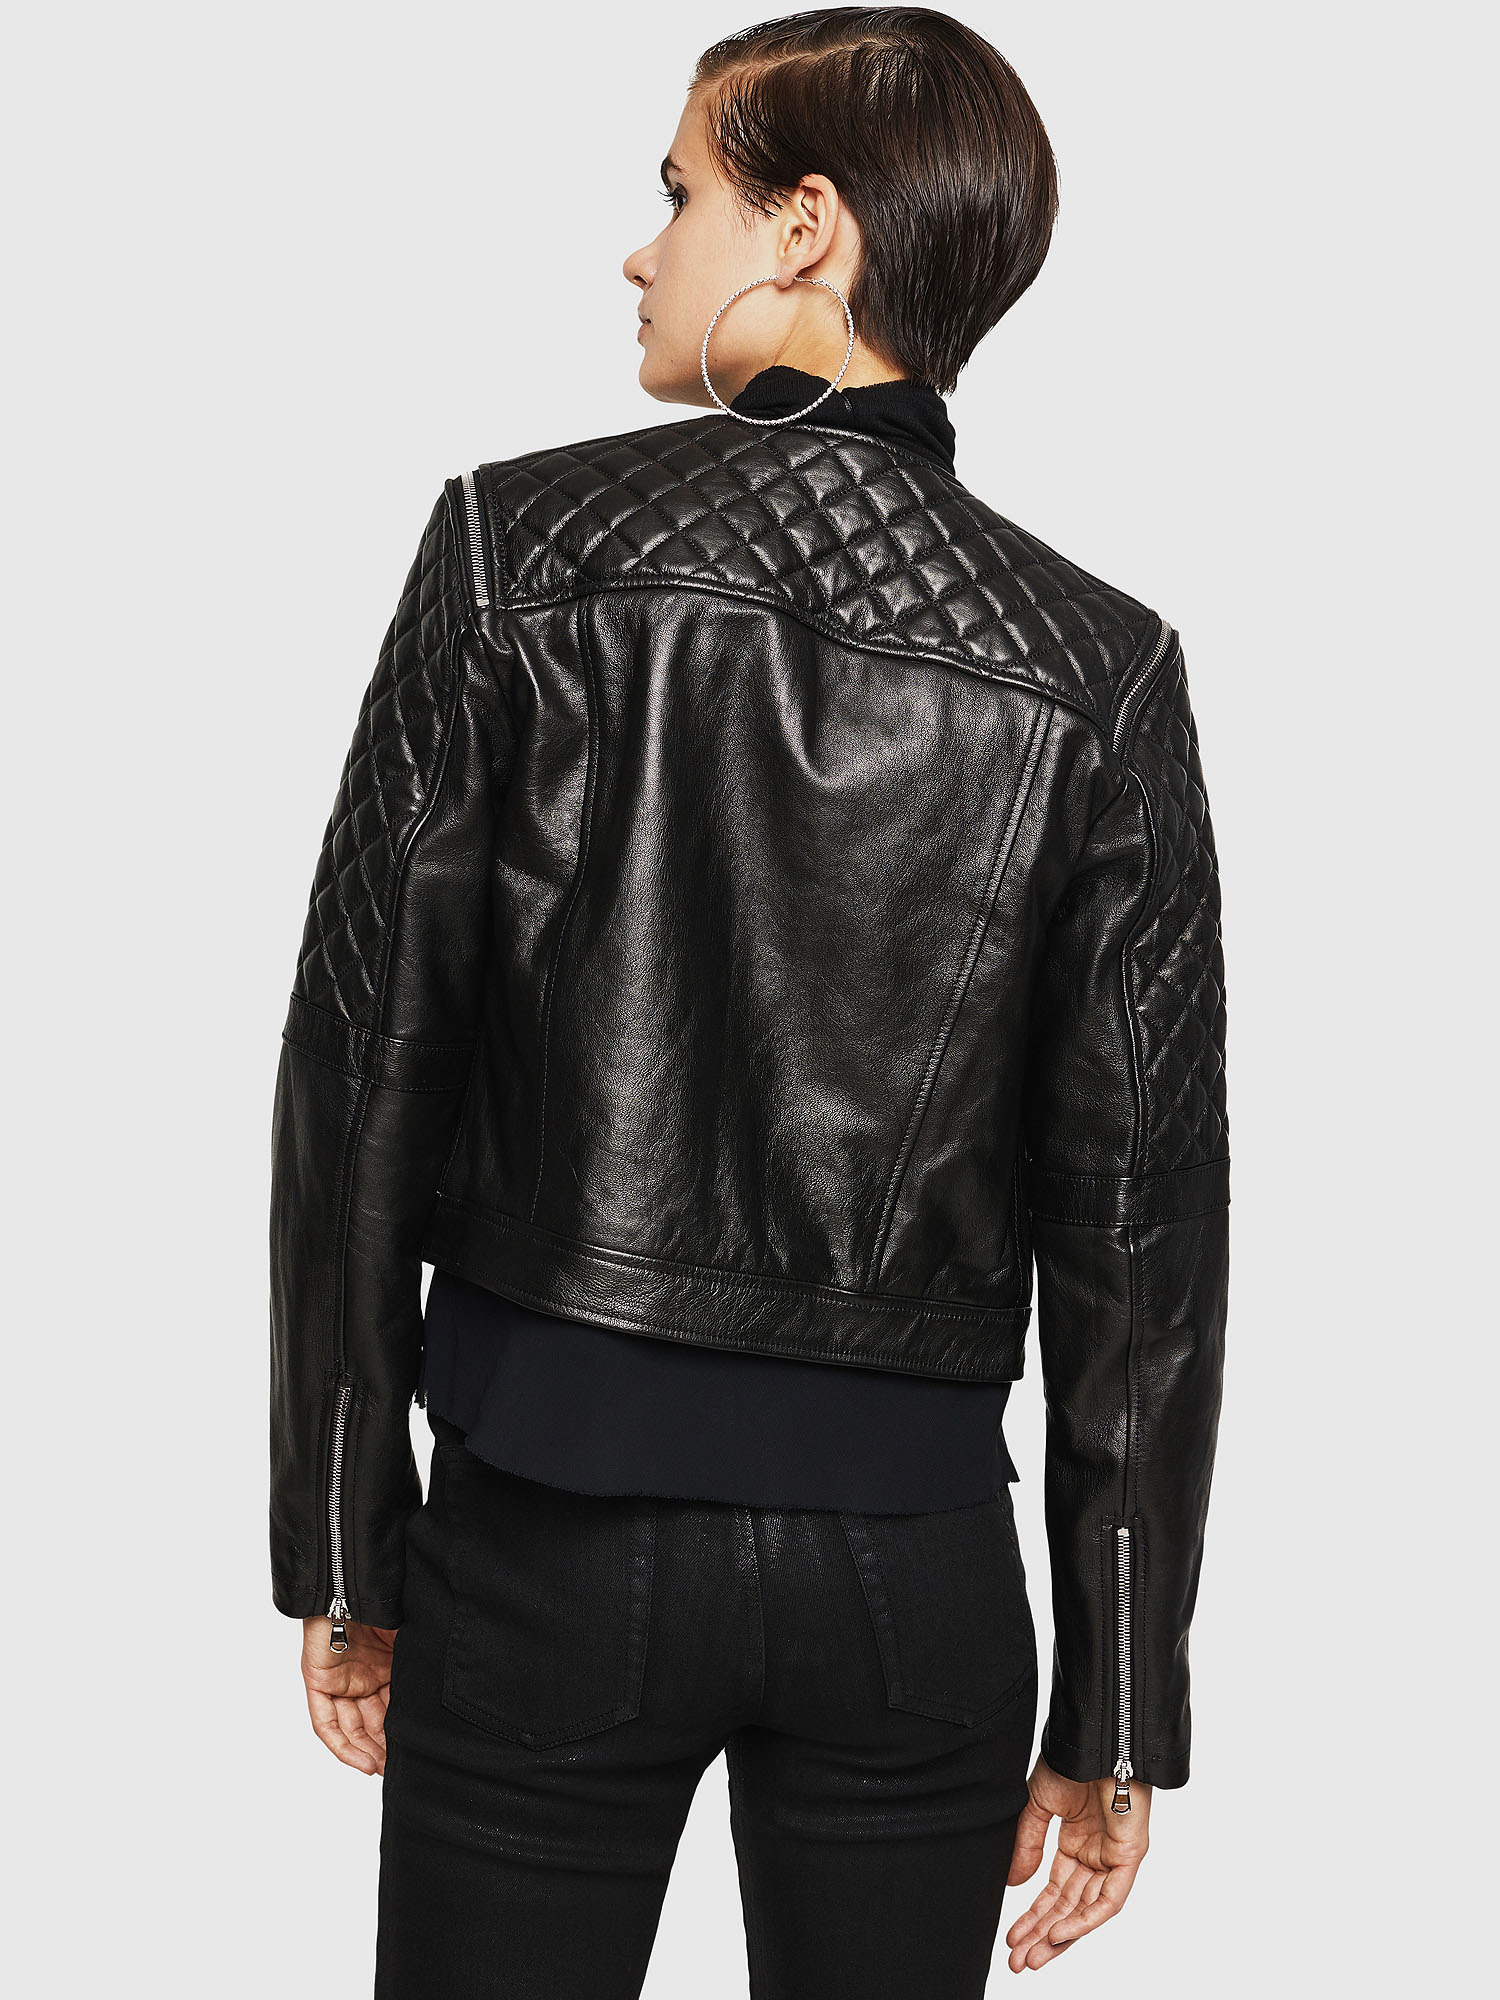 Diesel - LIVIA,  - Leather jackets - Image 2